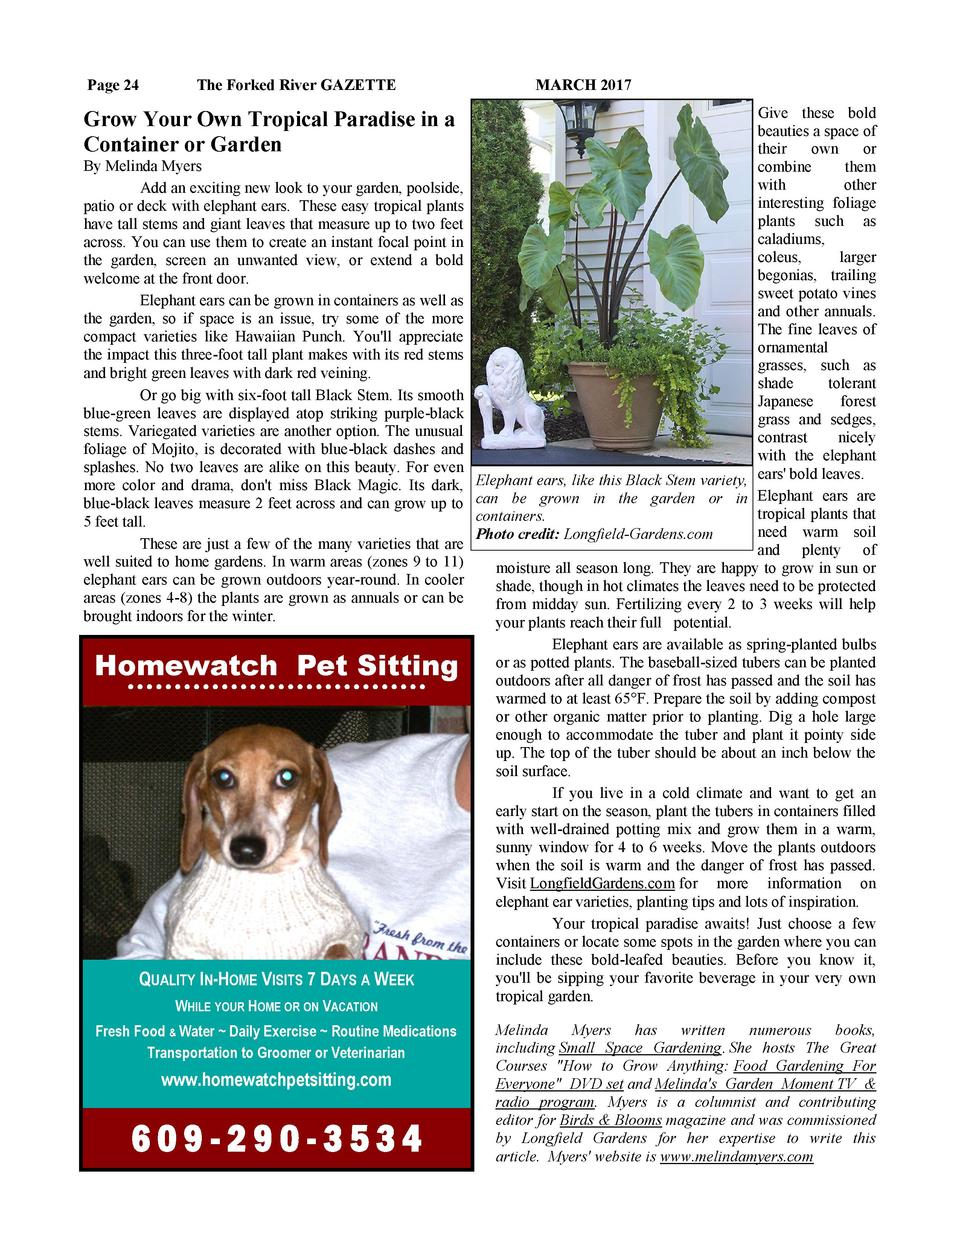 Page 24  The Forked River GAZETTE  Grow Your Own Tropical Paradise in a Container or Garden By Melinda Myers Add an exciti...